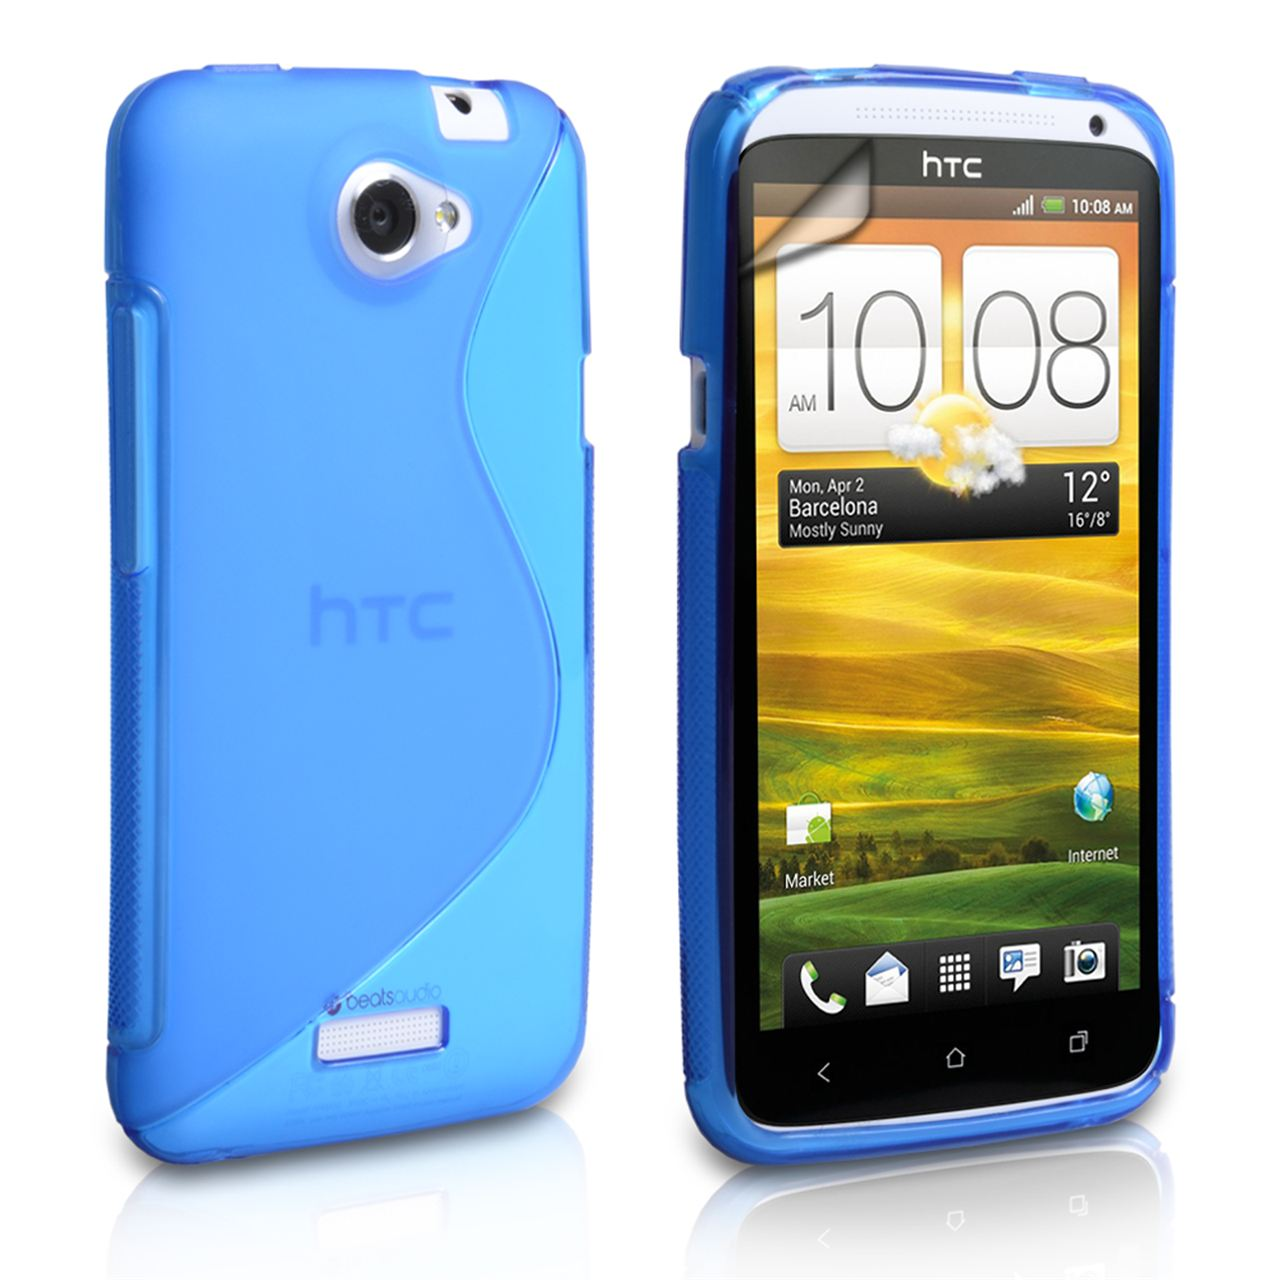 Caseflex HTC One X Silicone Gel S-Line Case - Blue